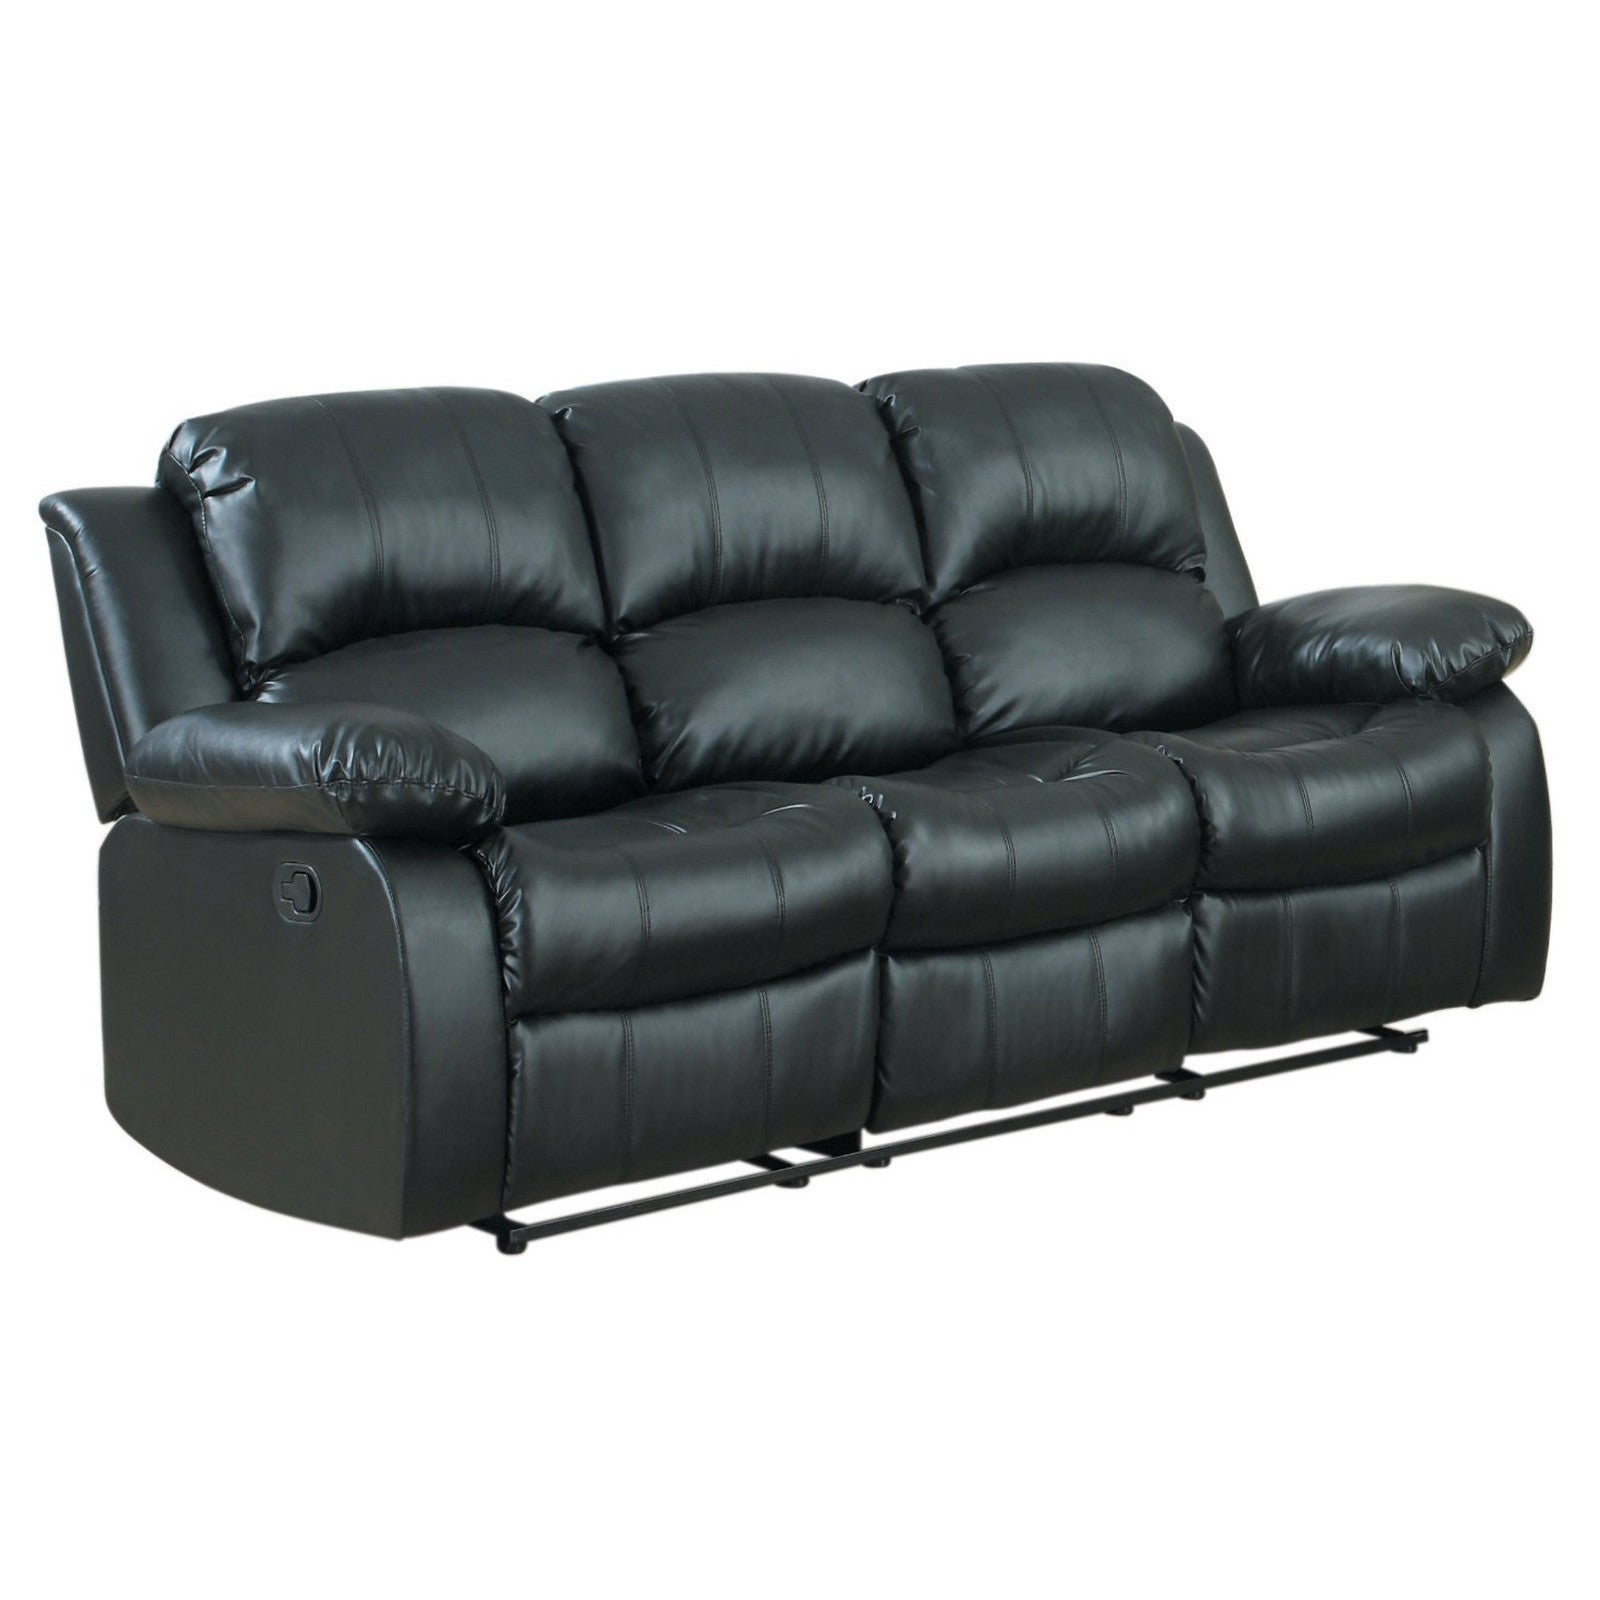 Classic Oversize and Overstuffed 3 Seat Bonded Leather Double Recliner Sofa